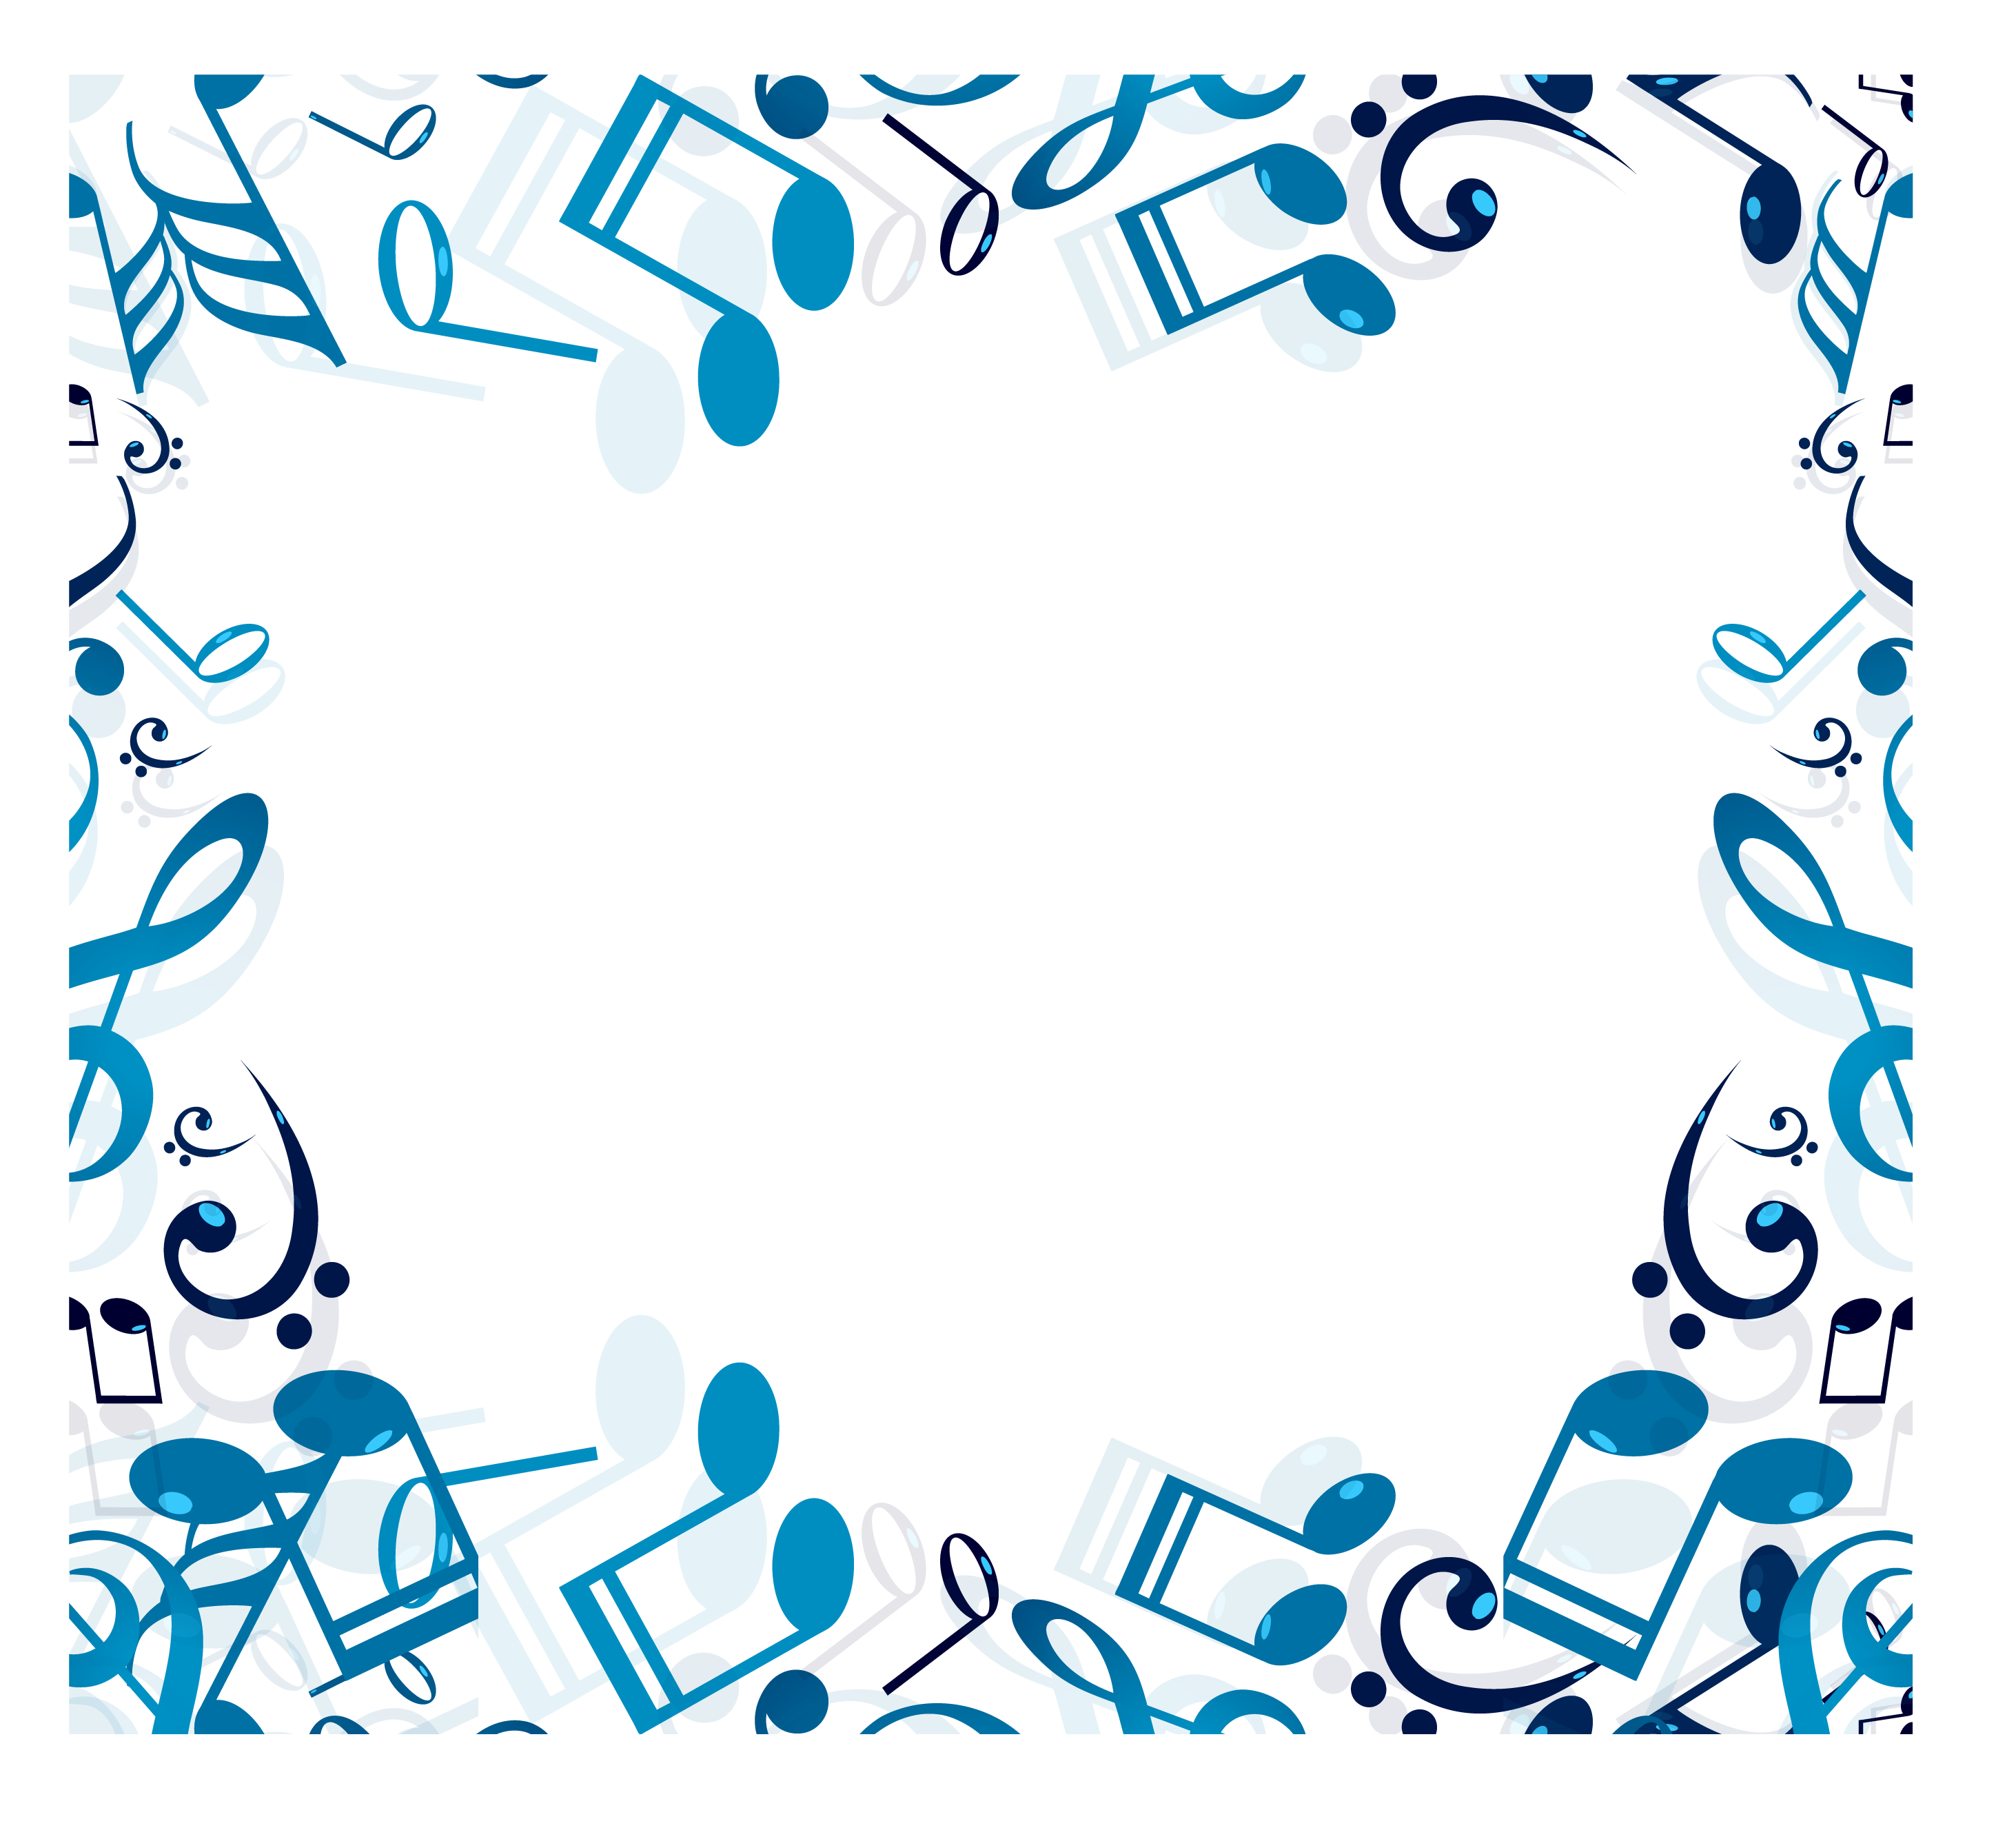 Musical note clip art. Music border png